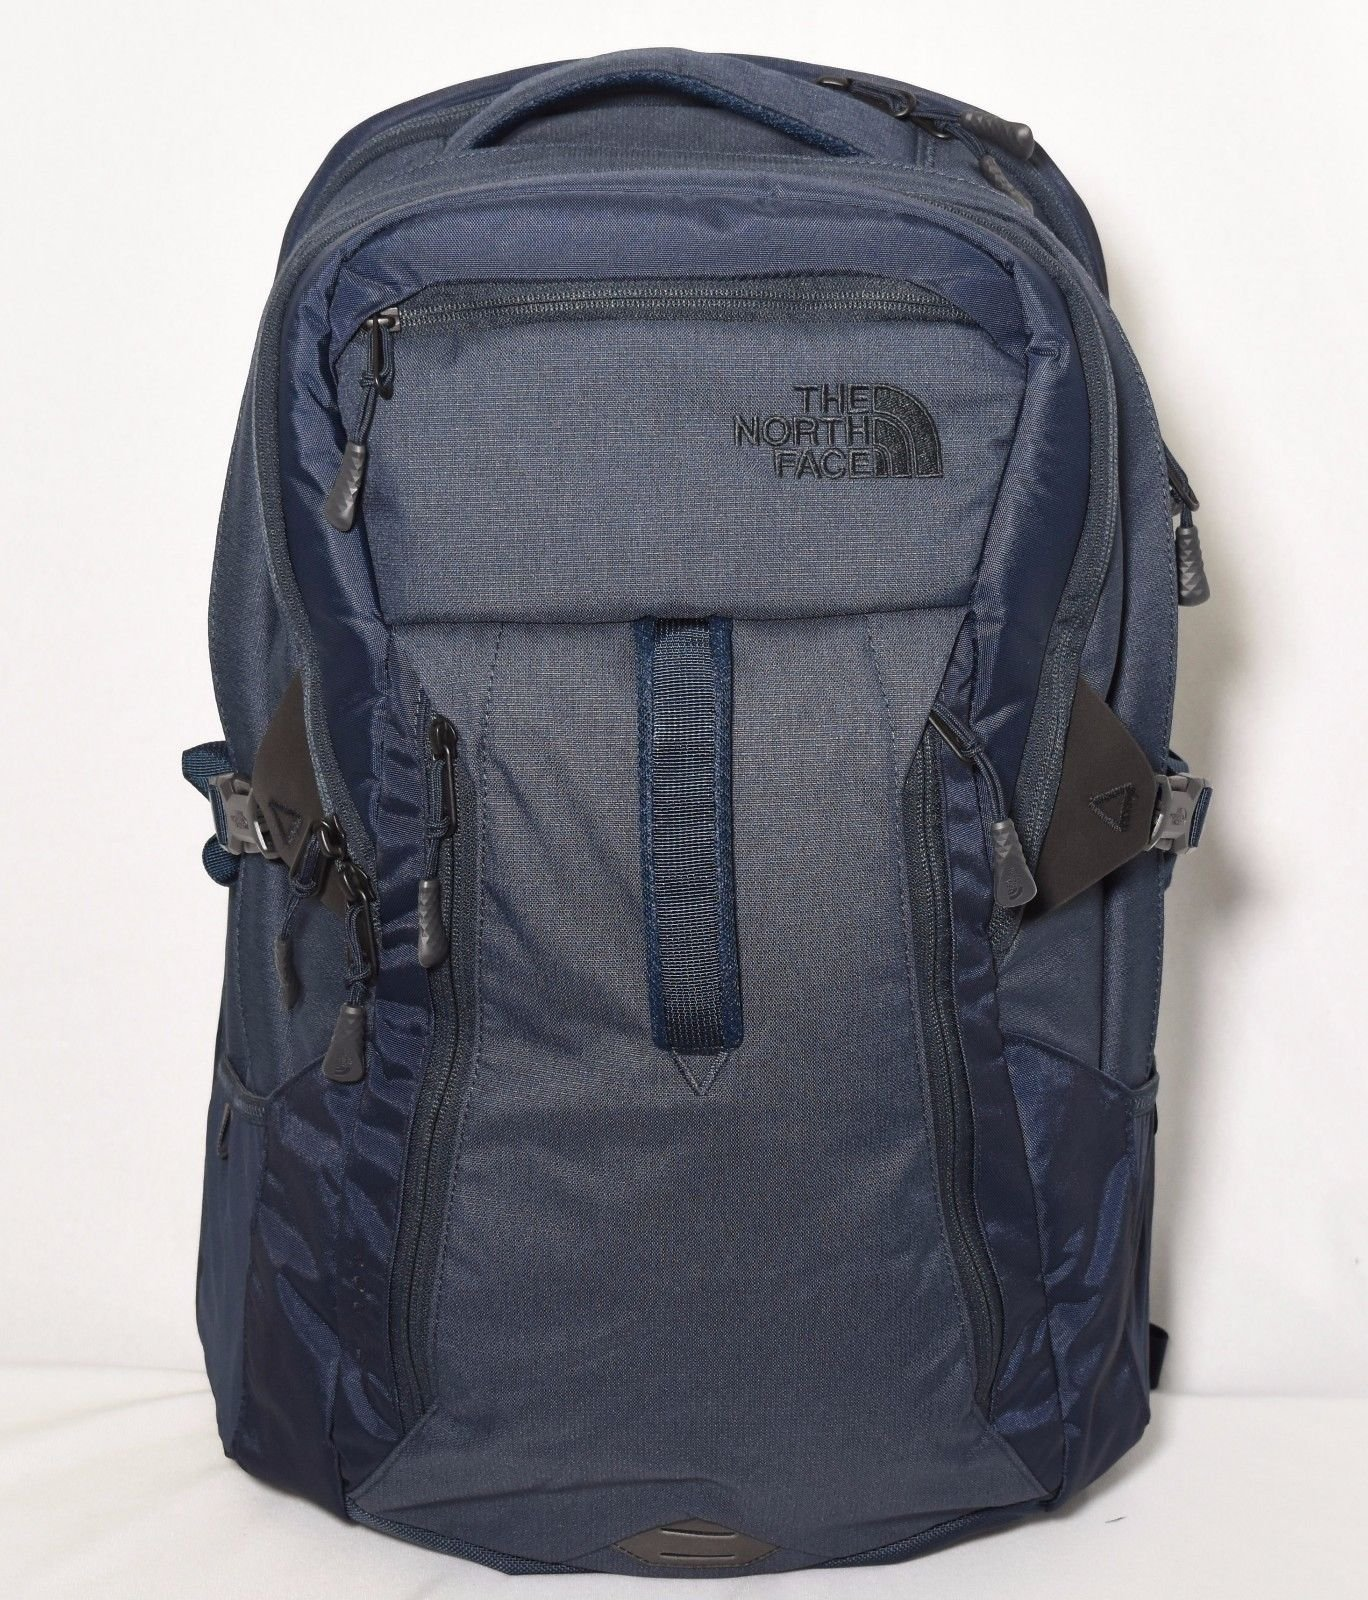 9a6109a9f The North Face Router Laptop Backpack - 17'' (Urban Navy/Light Heather)